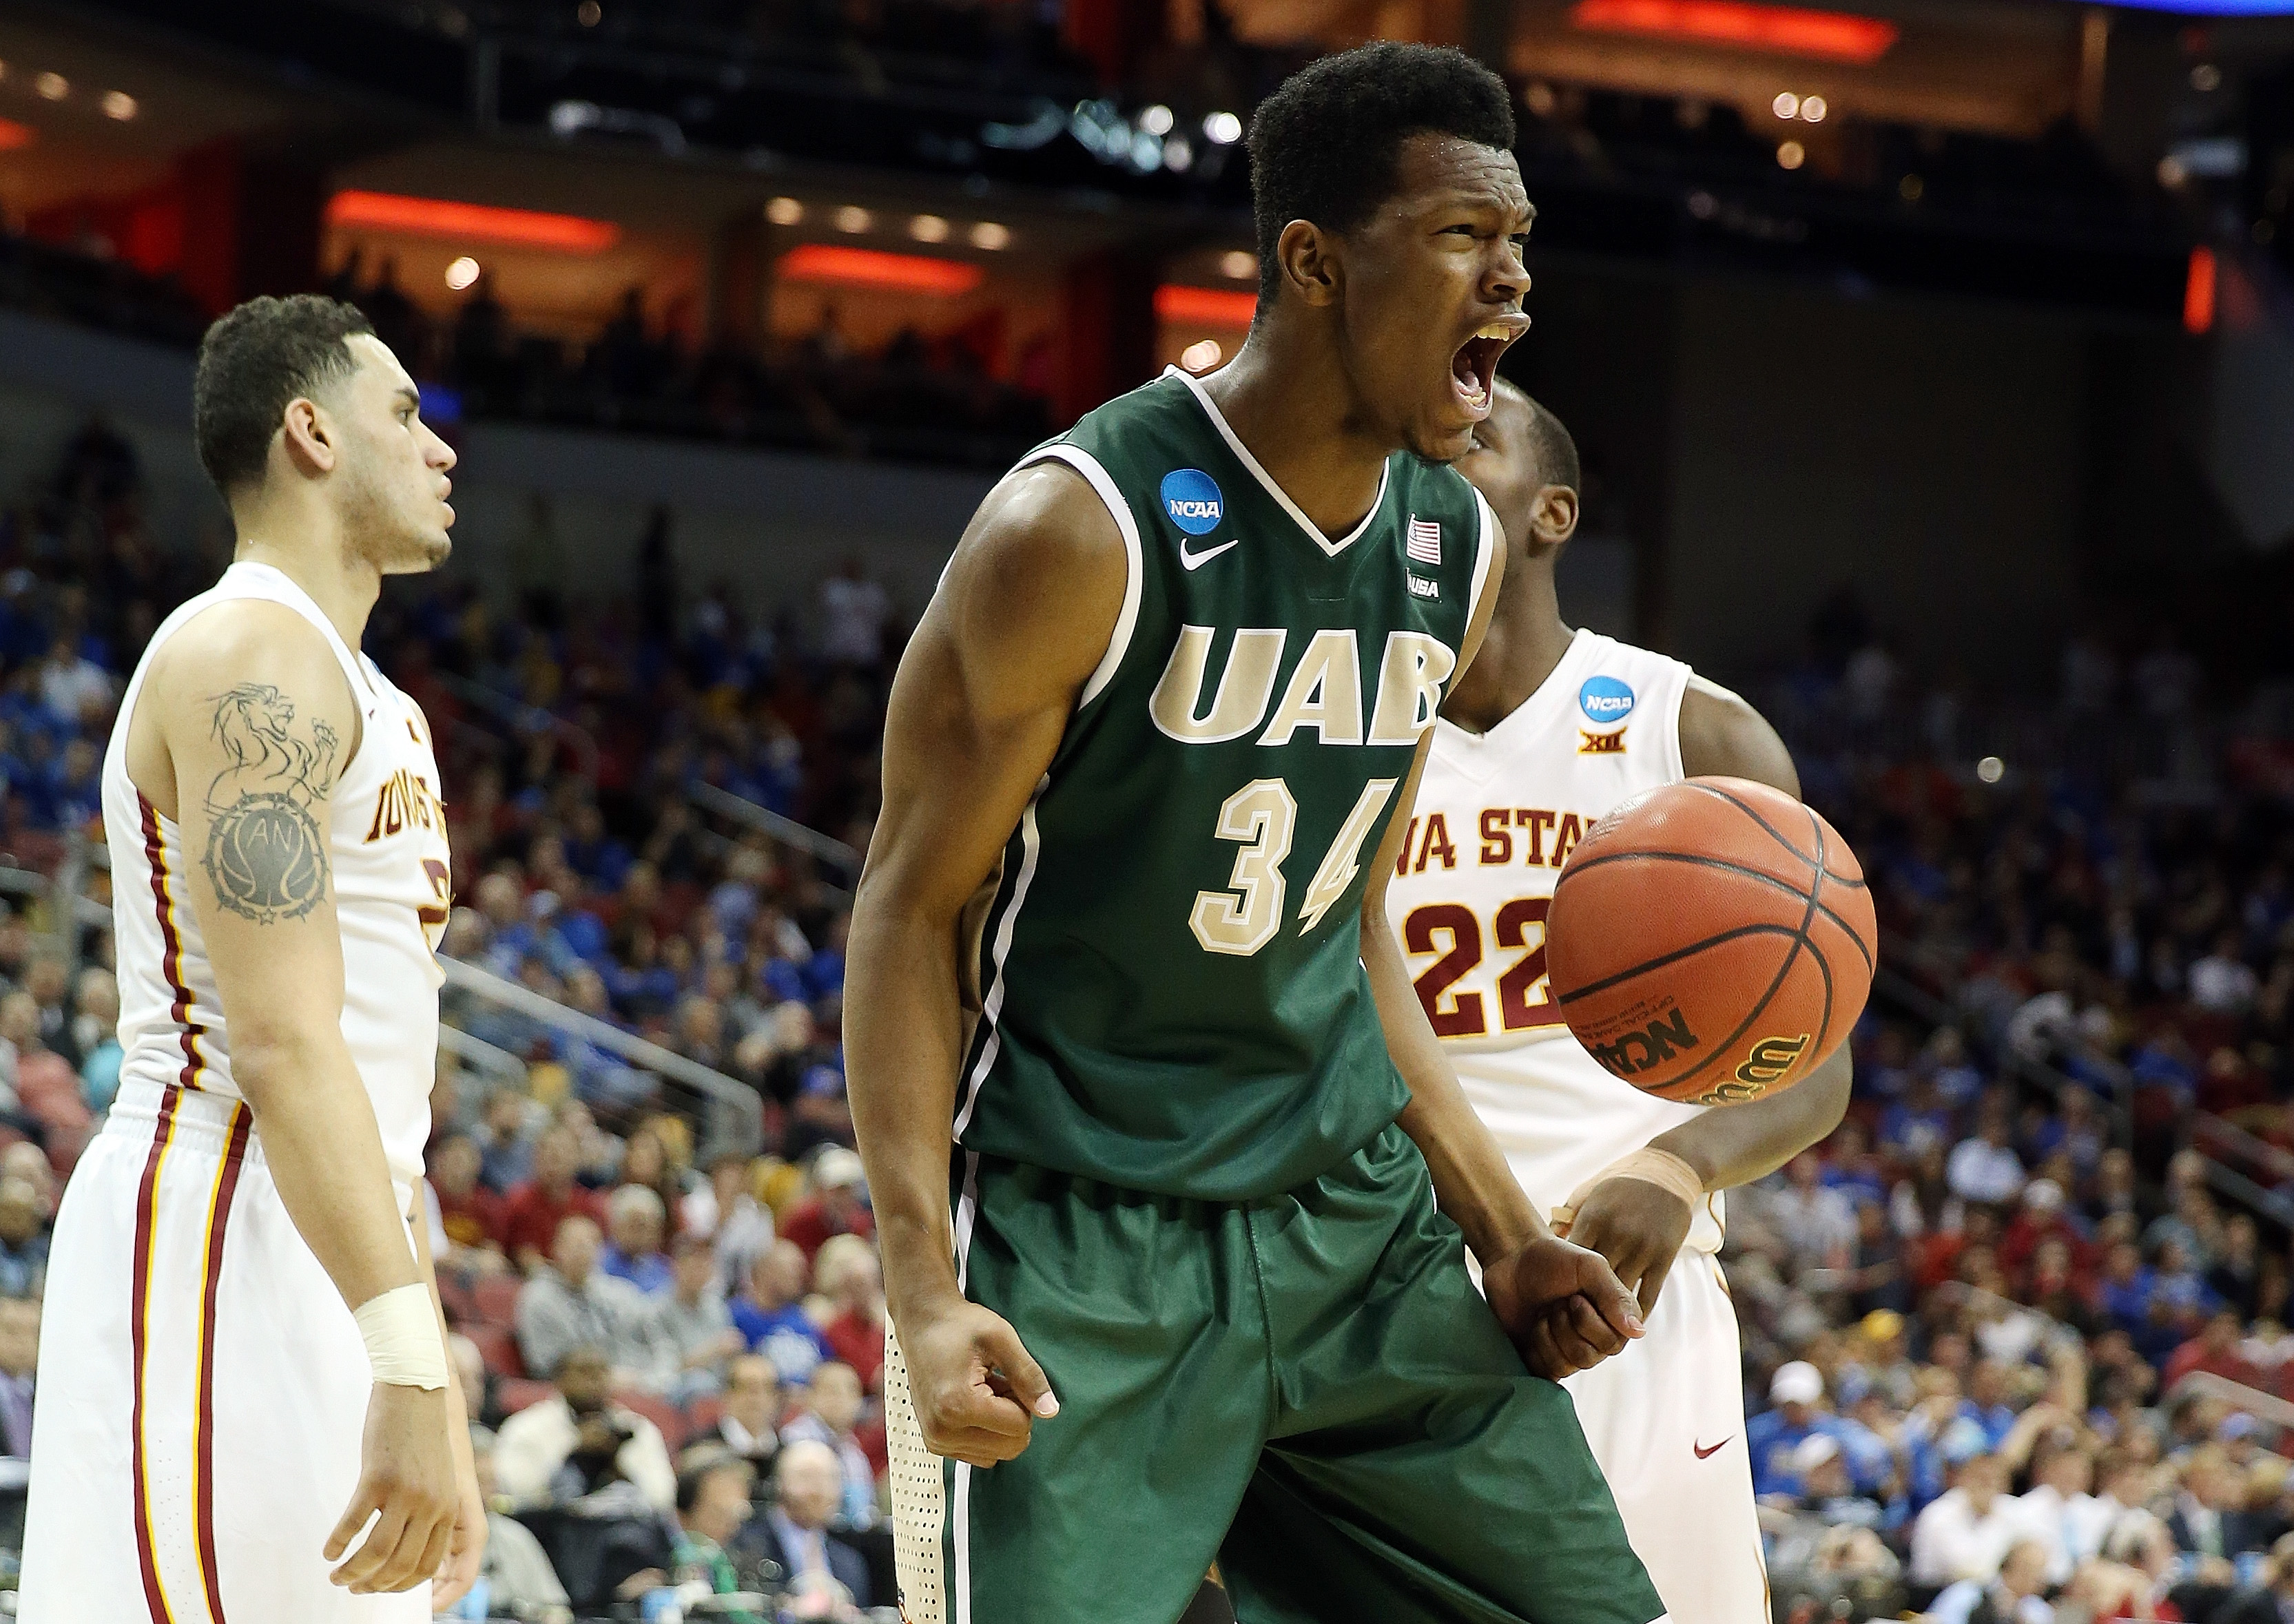 William Lee #34 of the UAB Blazers reacts after a play against the Iowa State Cyclones during the second round of the 2015 NCAA Men's Basketball Tournamenat